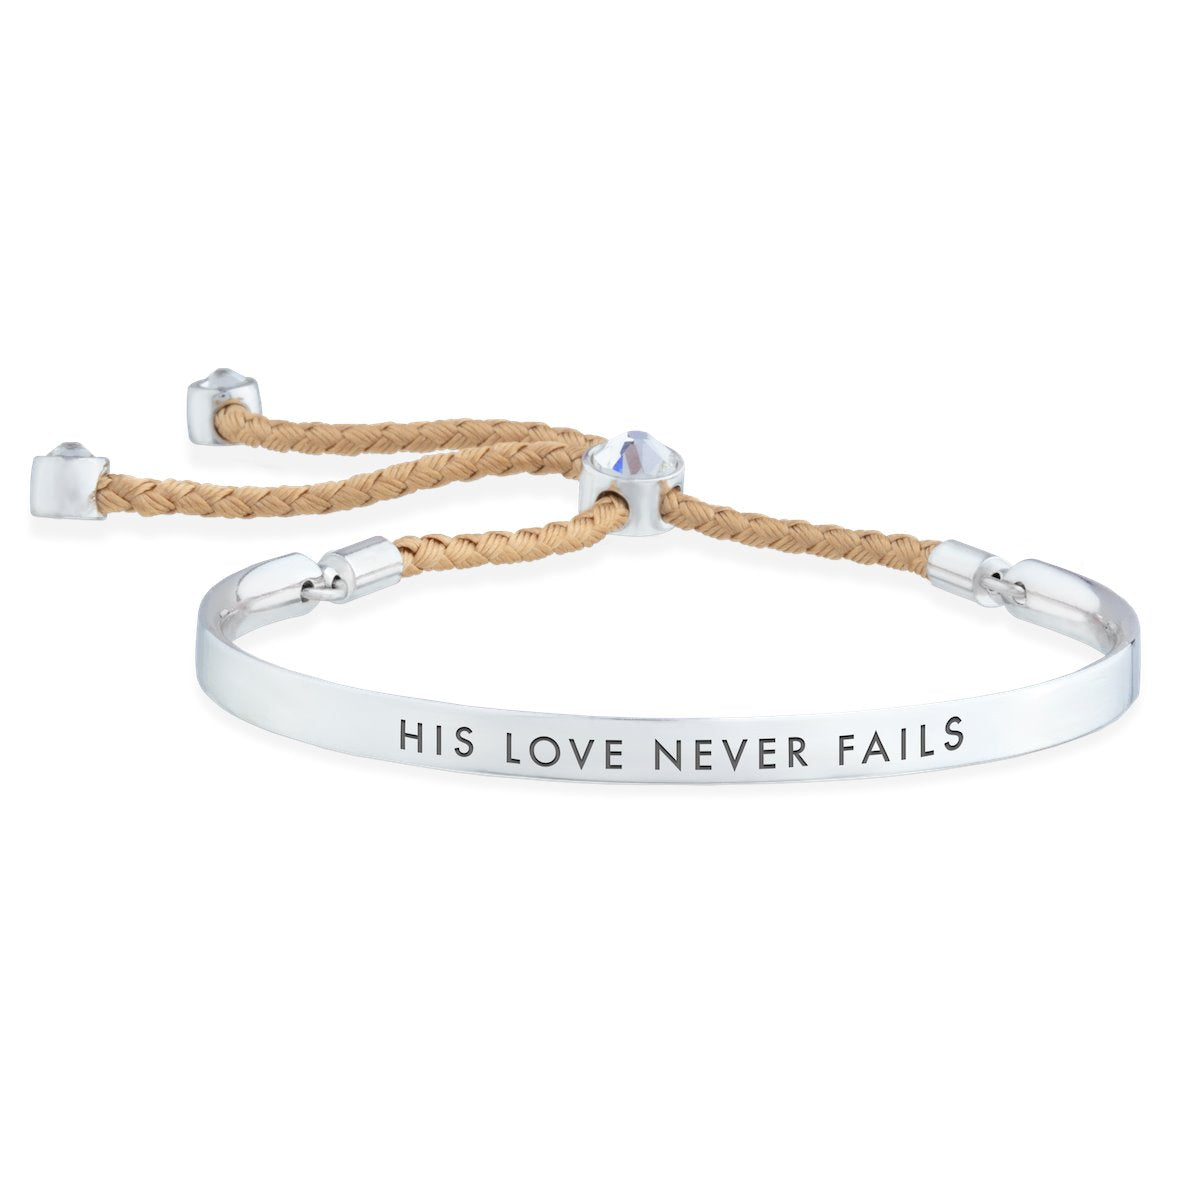 His Love Never Fails – Words of Empowerment Bracelet forevercrystals